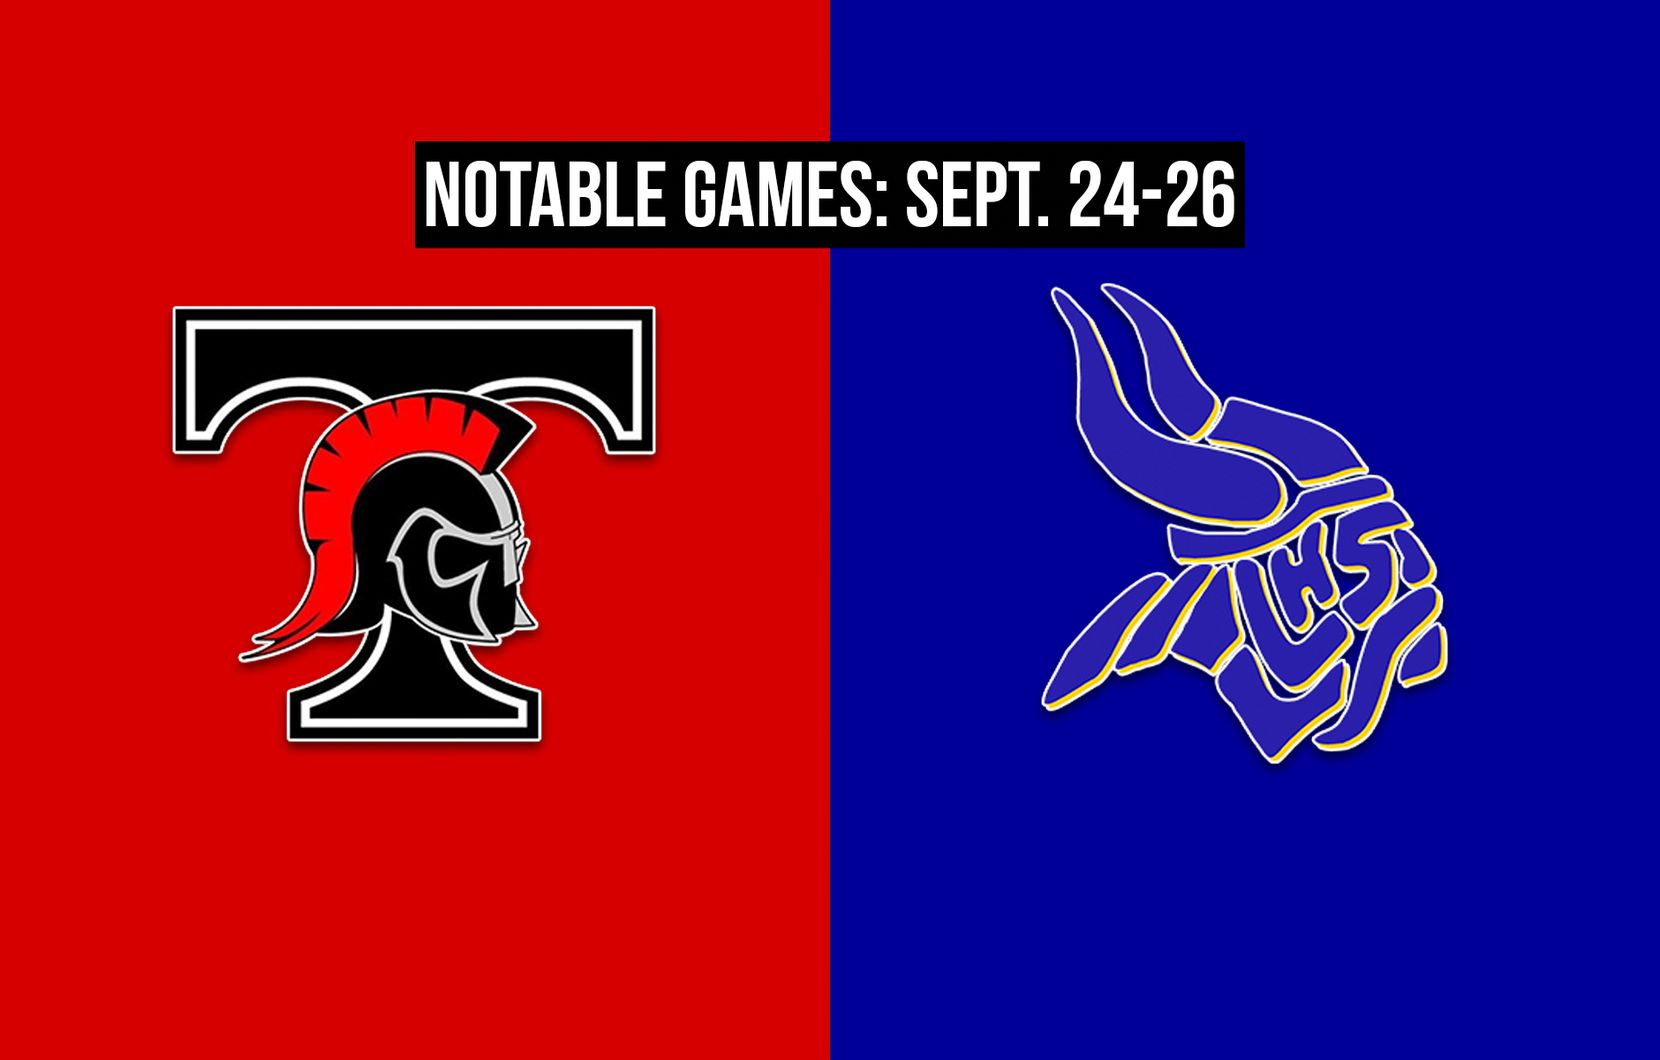 Notable games for the week of Sept. 24-26 of the 2020 season: Euless Trinity vs. Arlington Lamar.